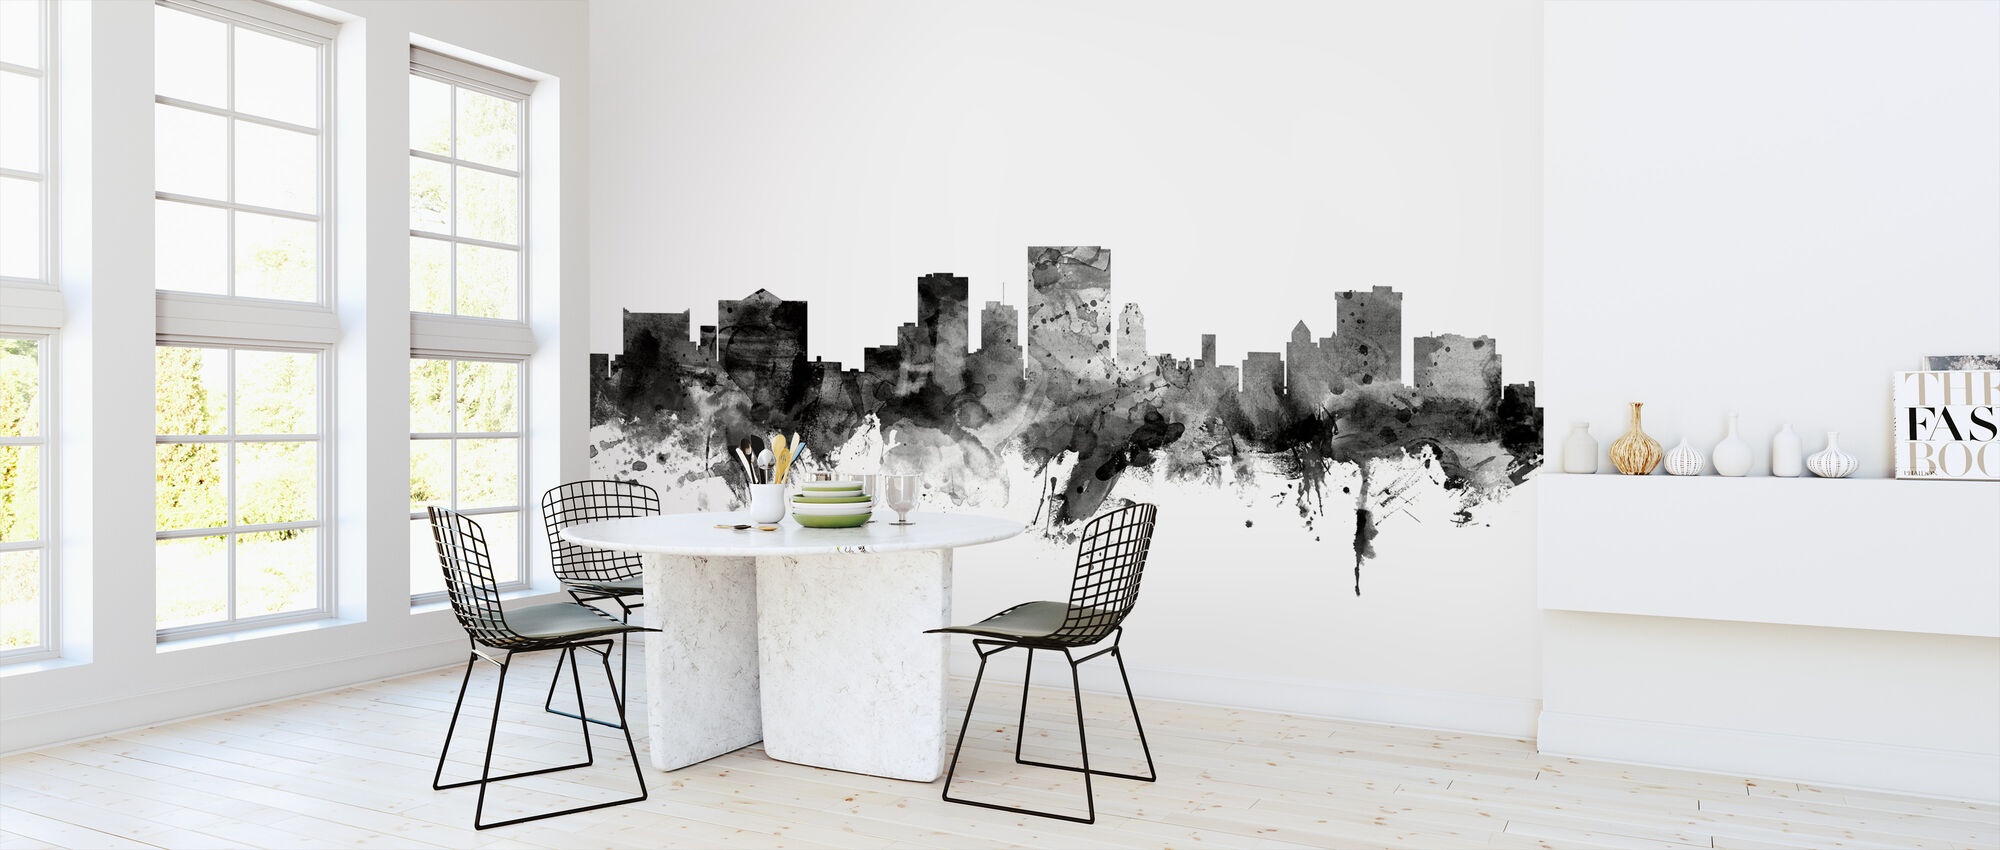 El Paso Texas Skyline Black - Wallpaper - Kitchen